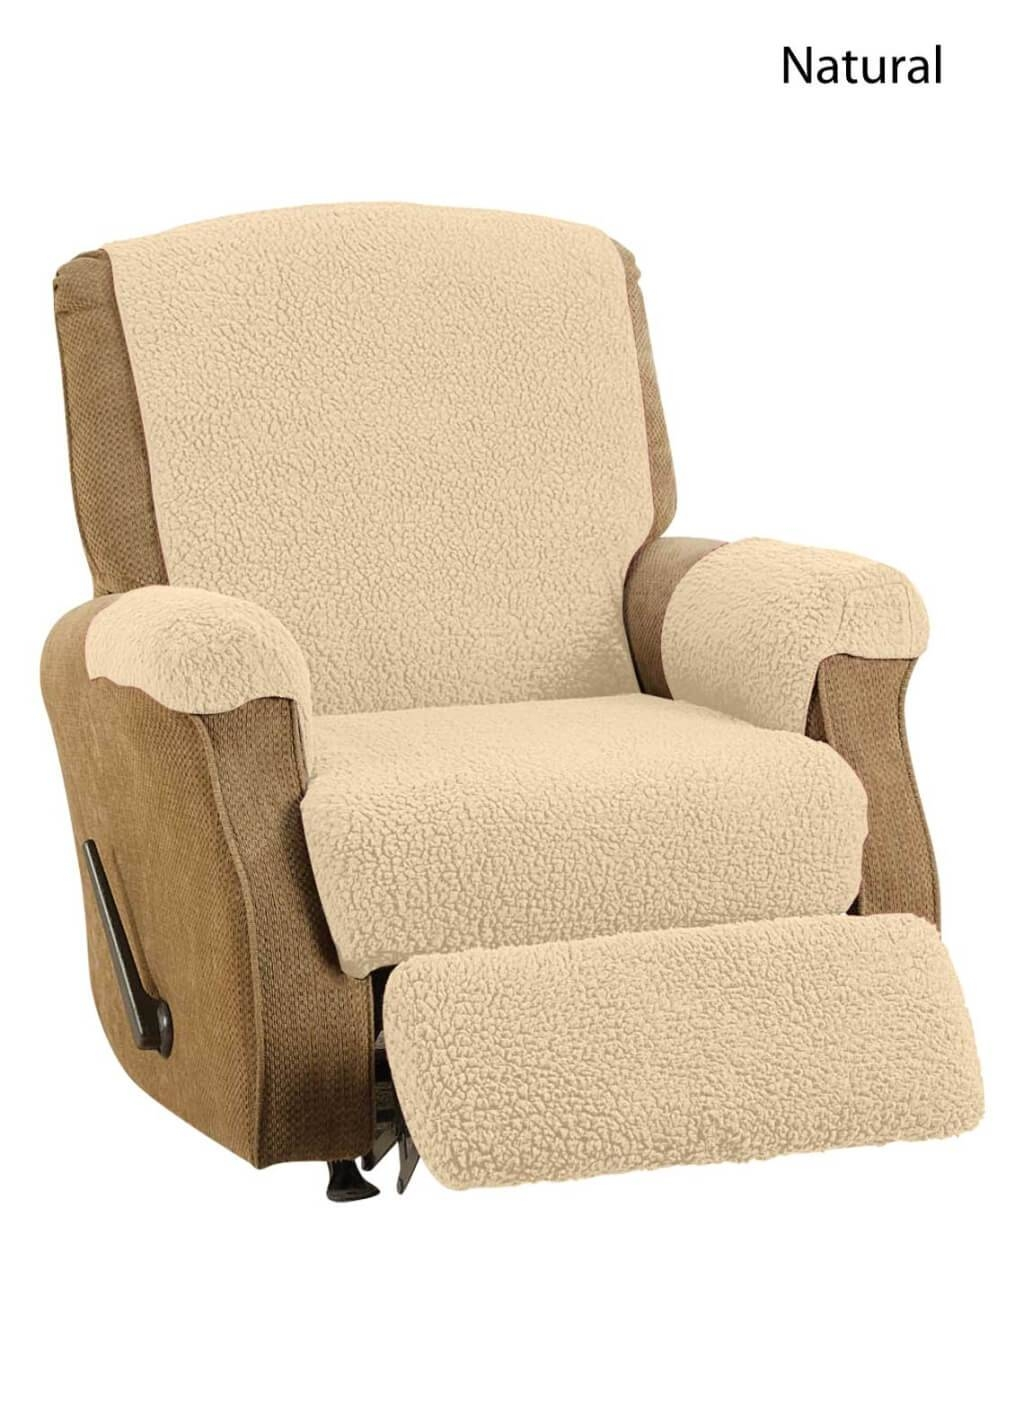 Furniture: Lavish Lazy Boy Recliner Covers For Pretty Recliner intended for Slipcover for Reclining Sofas (Image 3 of 15)